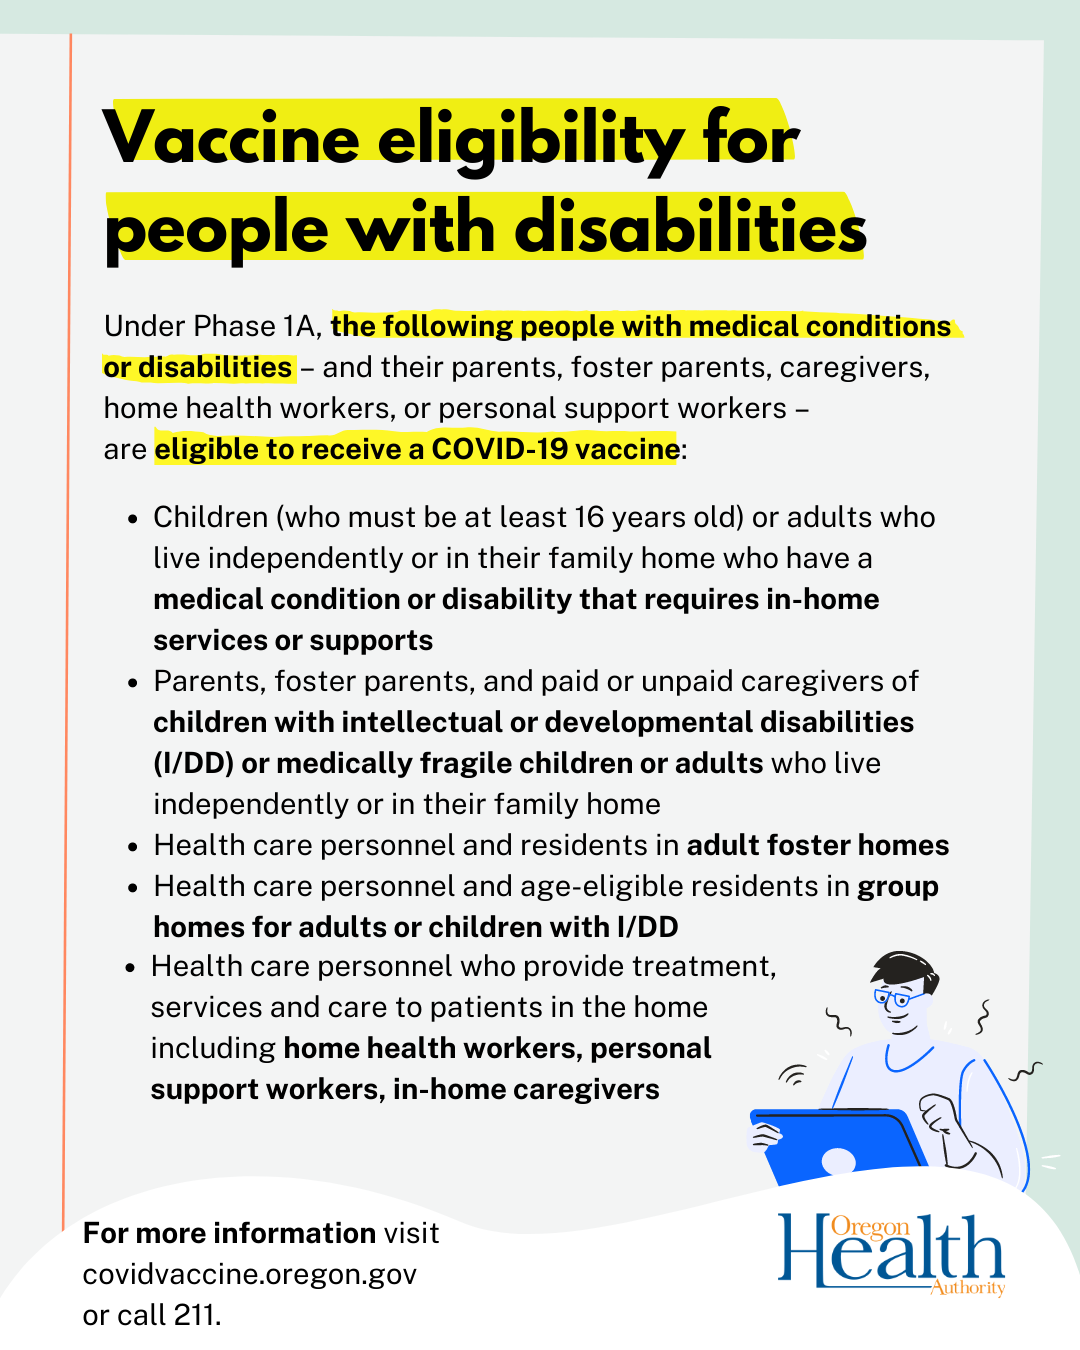 vaccine eligibility for people with disabilities